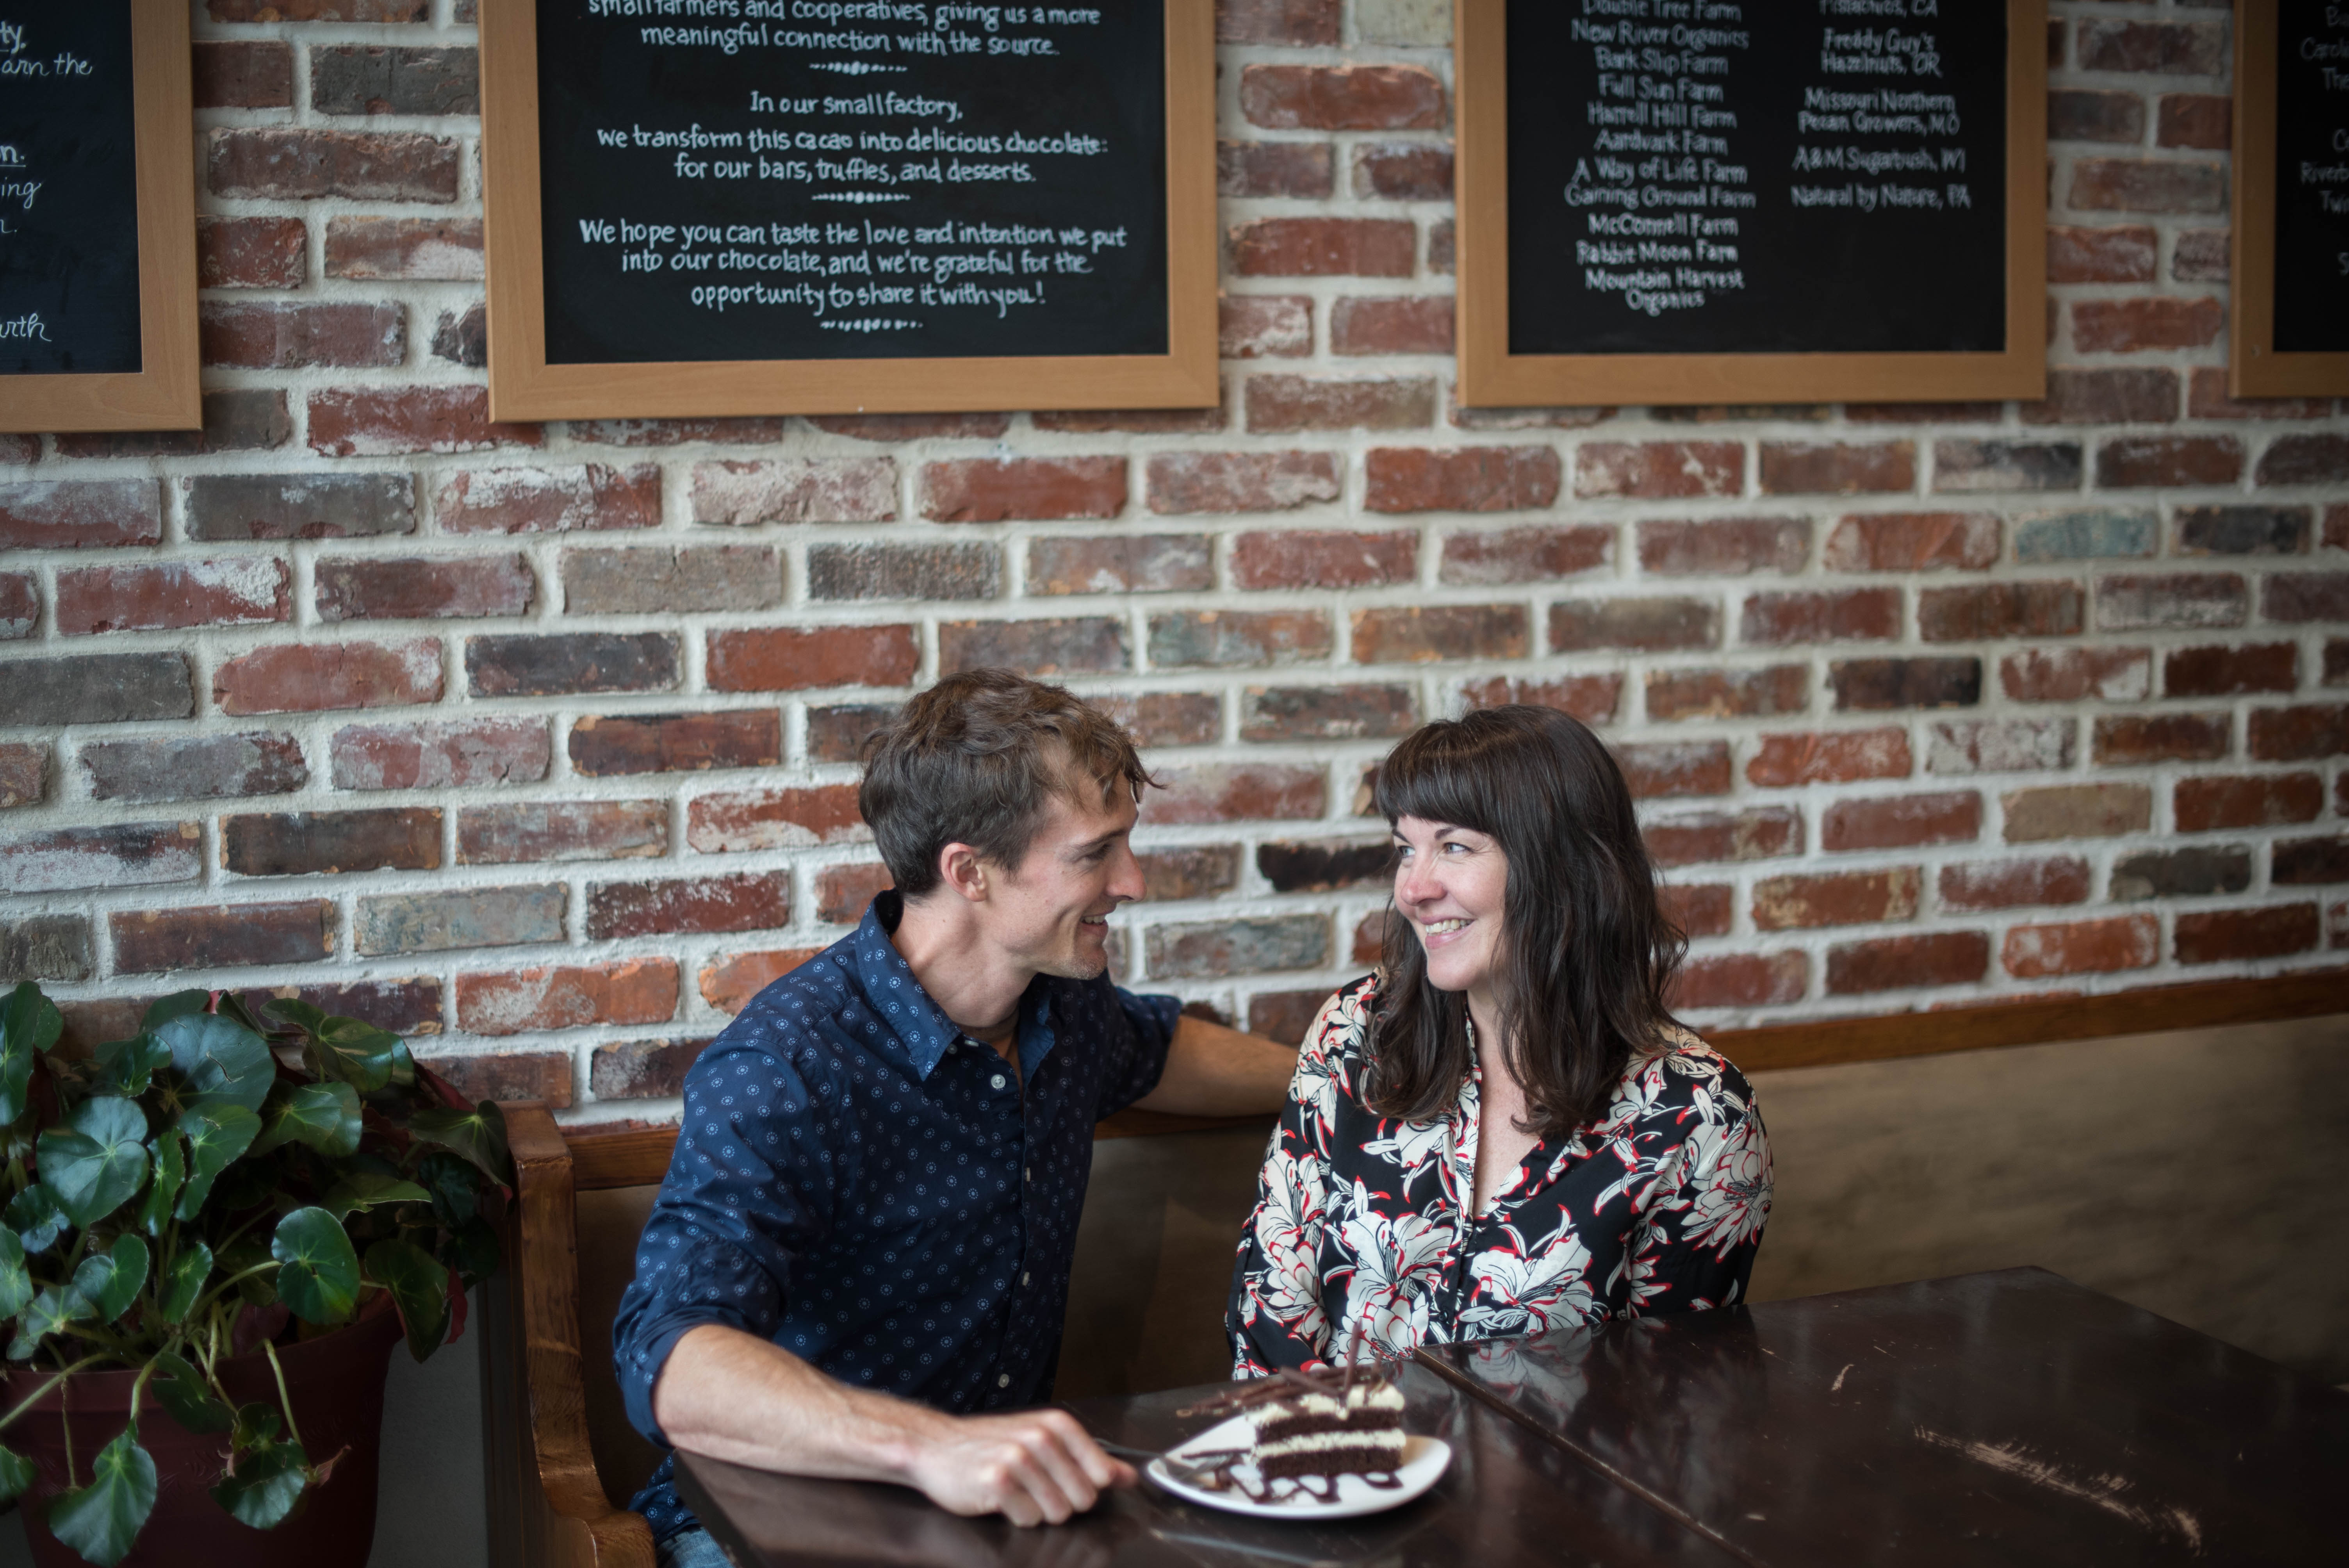 Making Artisanal Chocolate in Asheville, North Carolina - Meridian